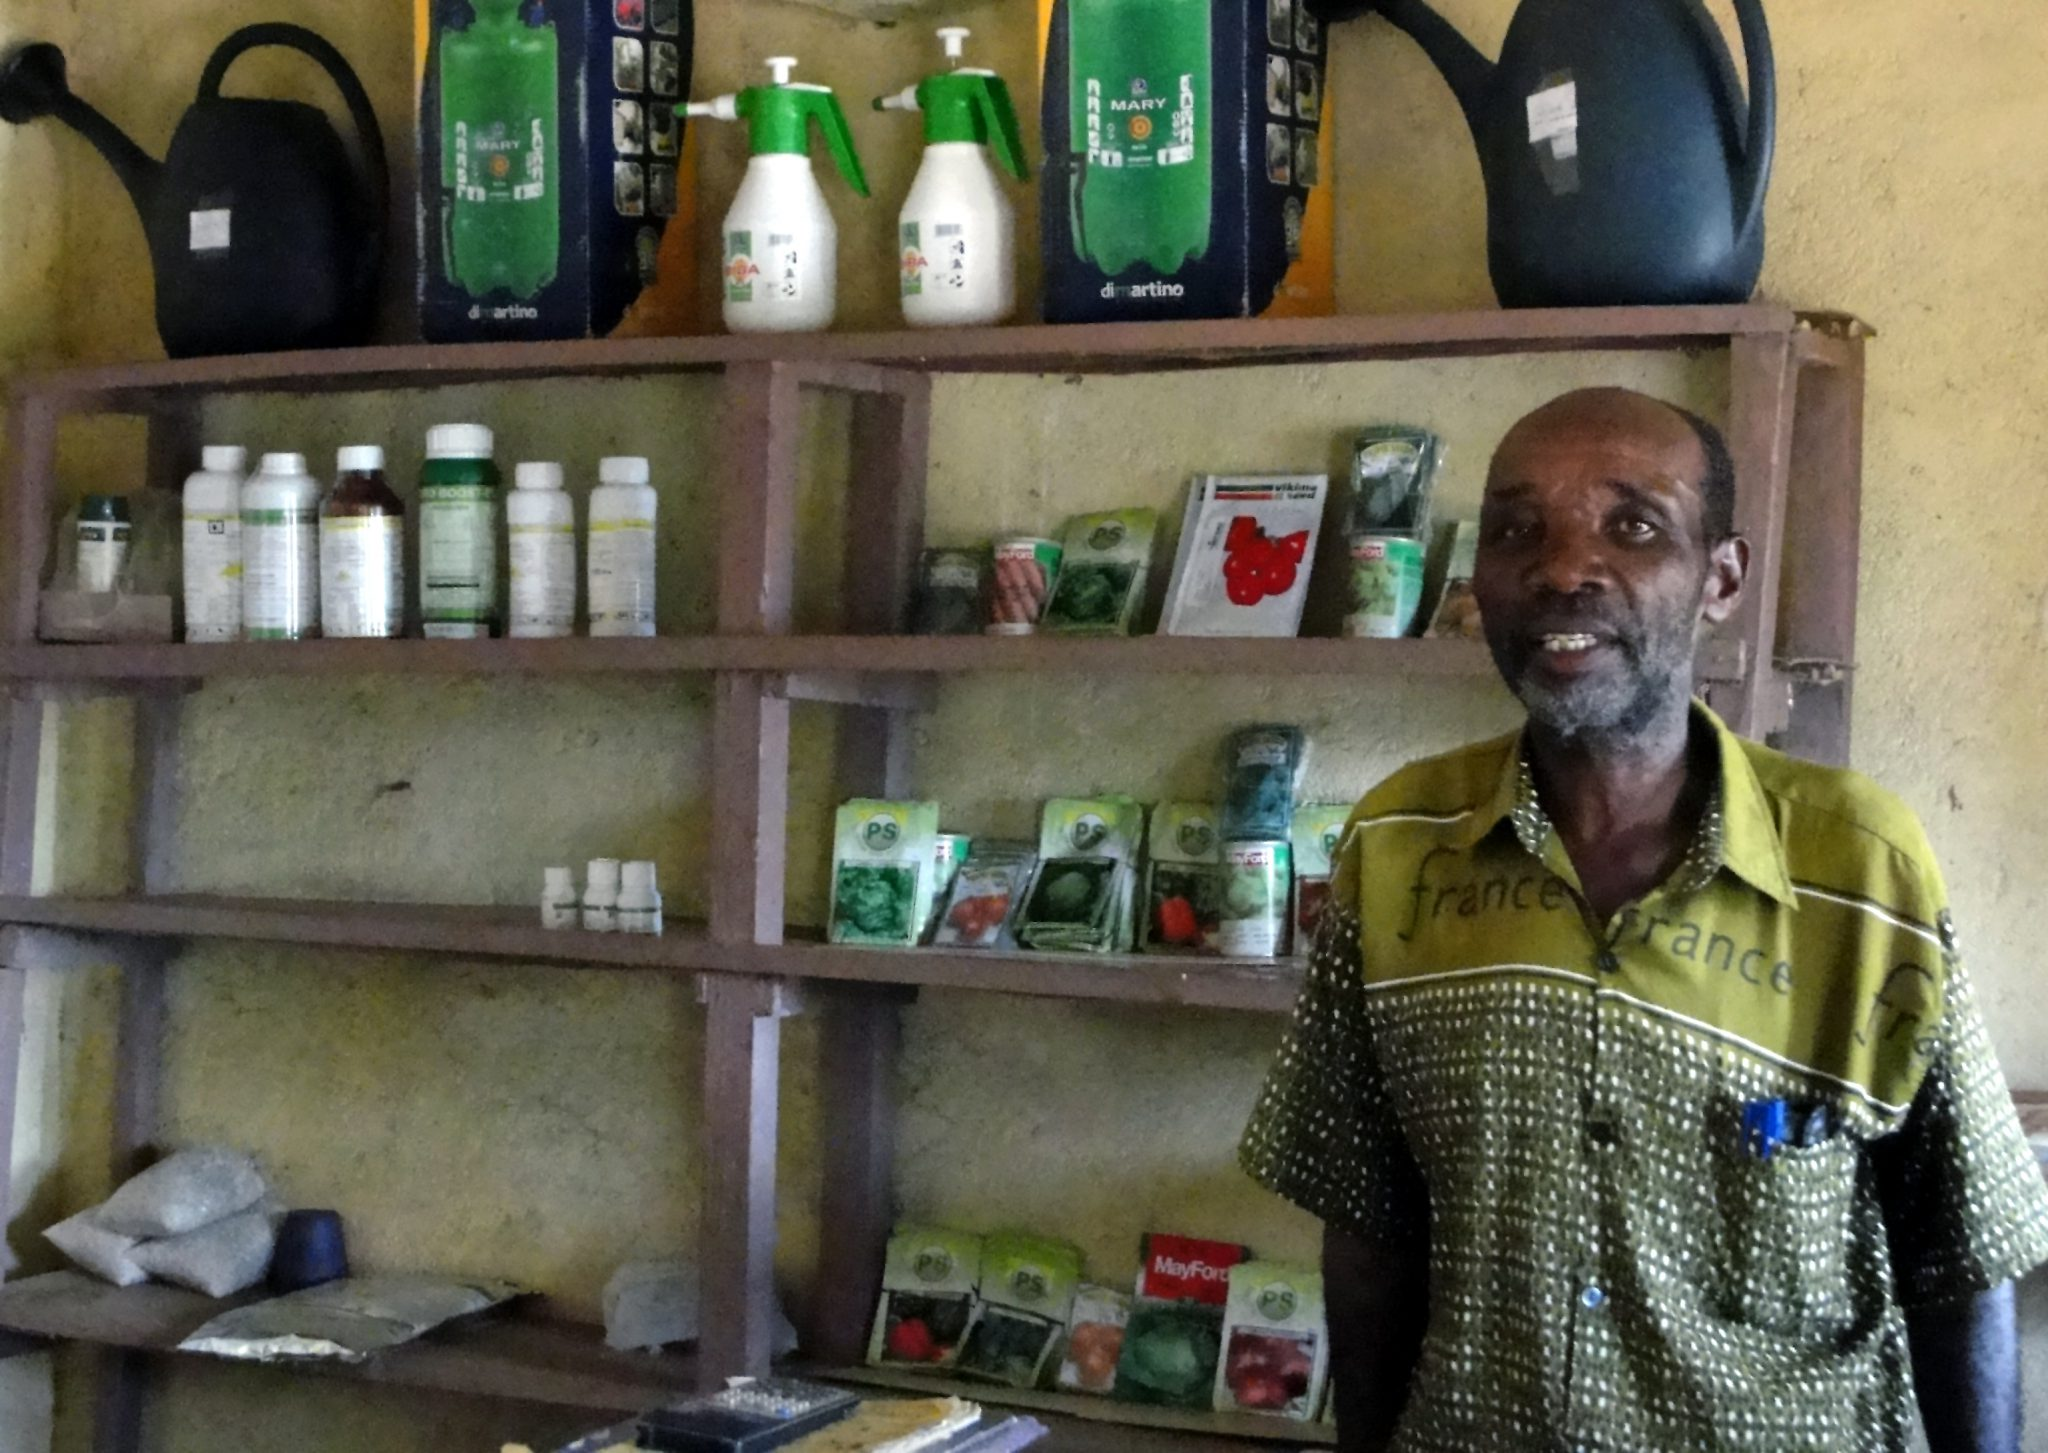 An agrodealer shop in Mozambique selling seeds, fertilisers and expertise